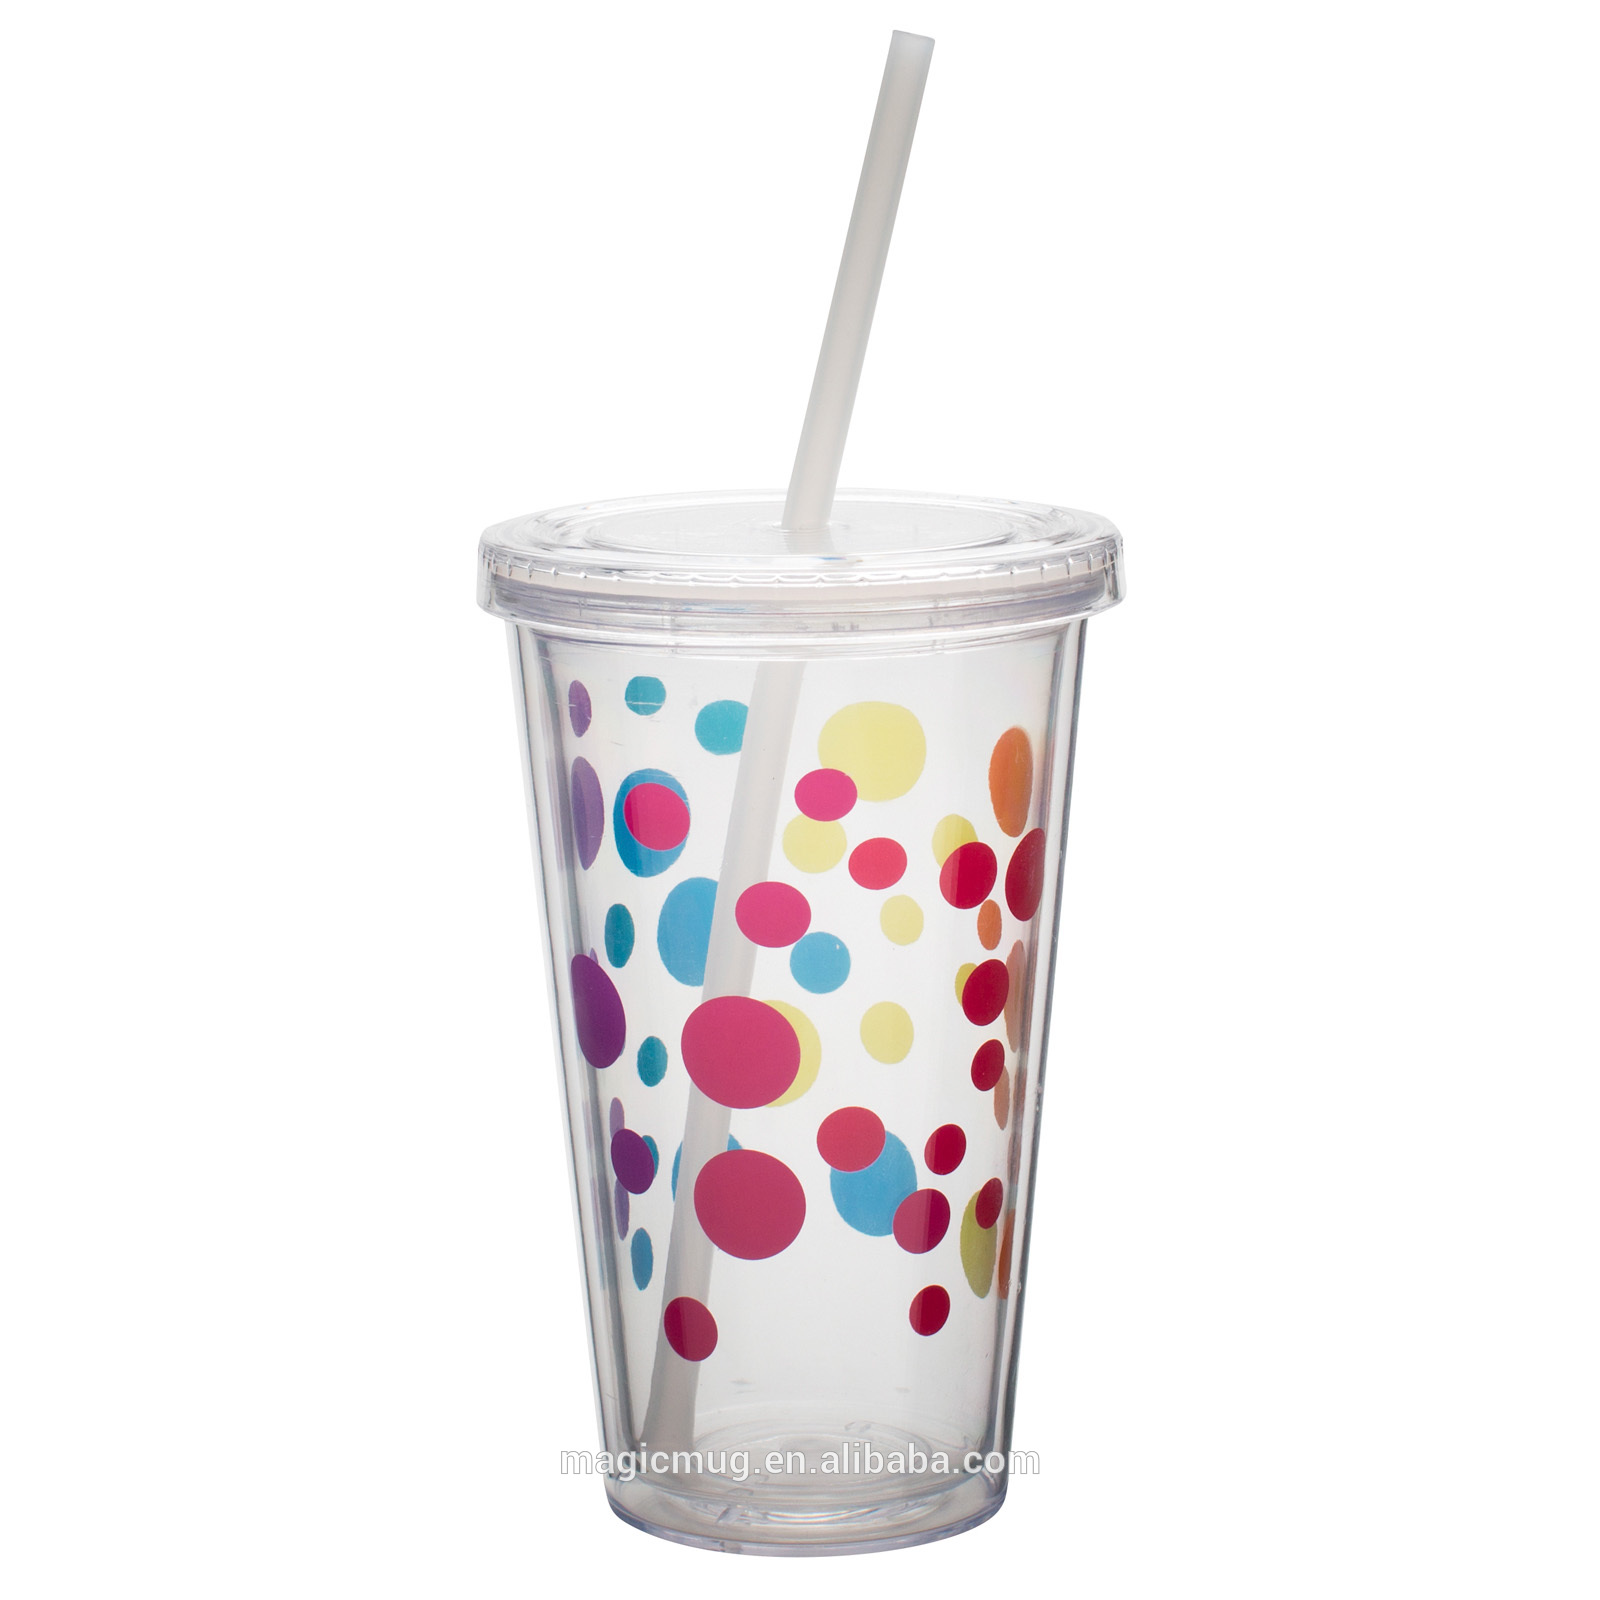 Cute Coffee Mugs With Lids Insulated Plastic Drink Cup Glass With Curly Crazy Straw